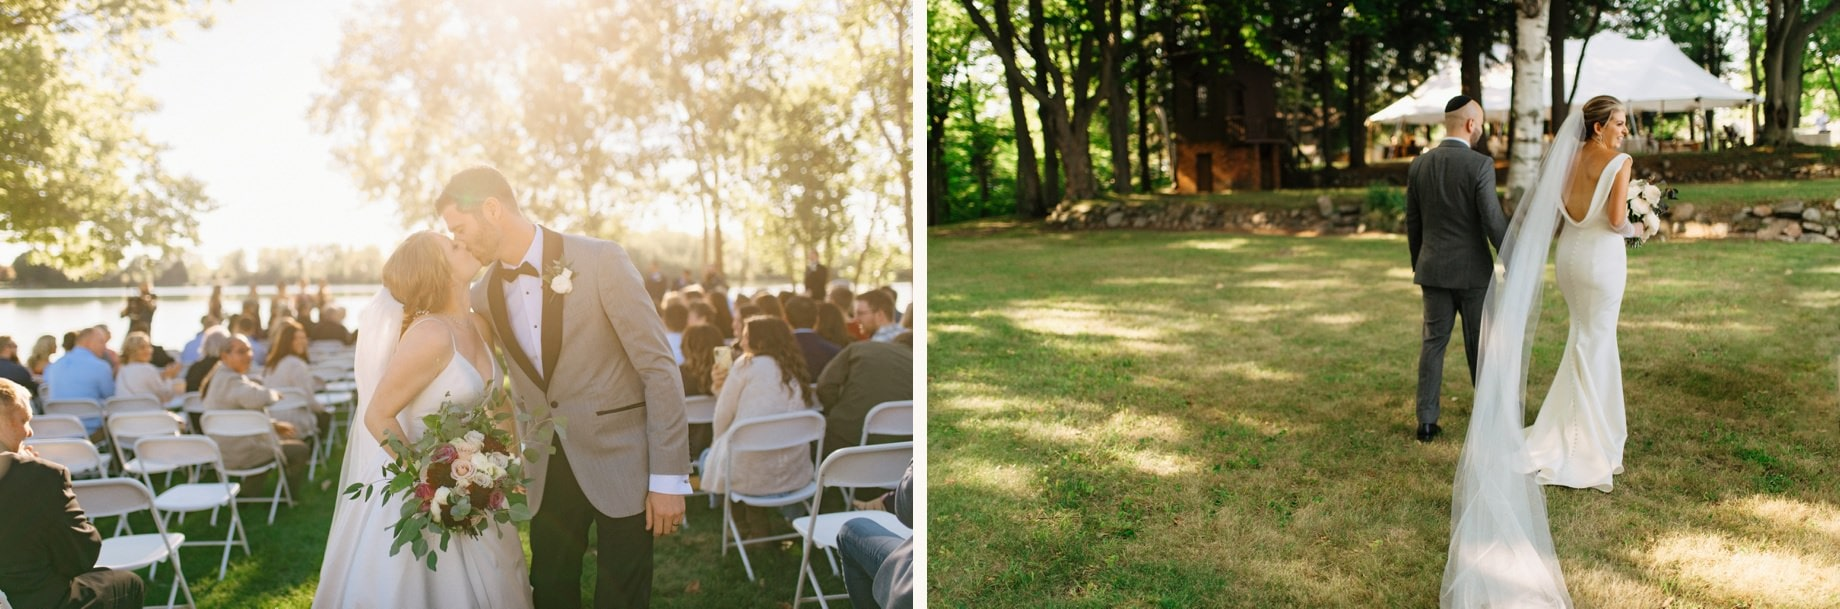 photojournalistic Detroit wedding photographer Heather Jowett